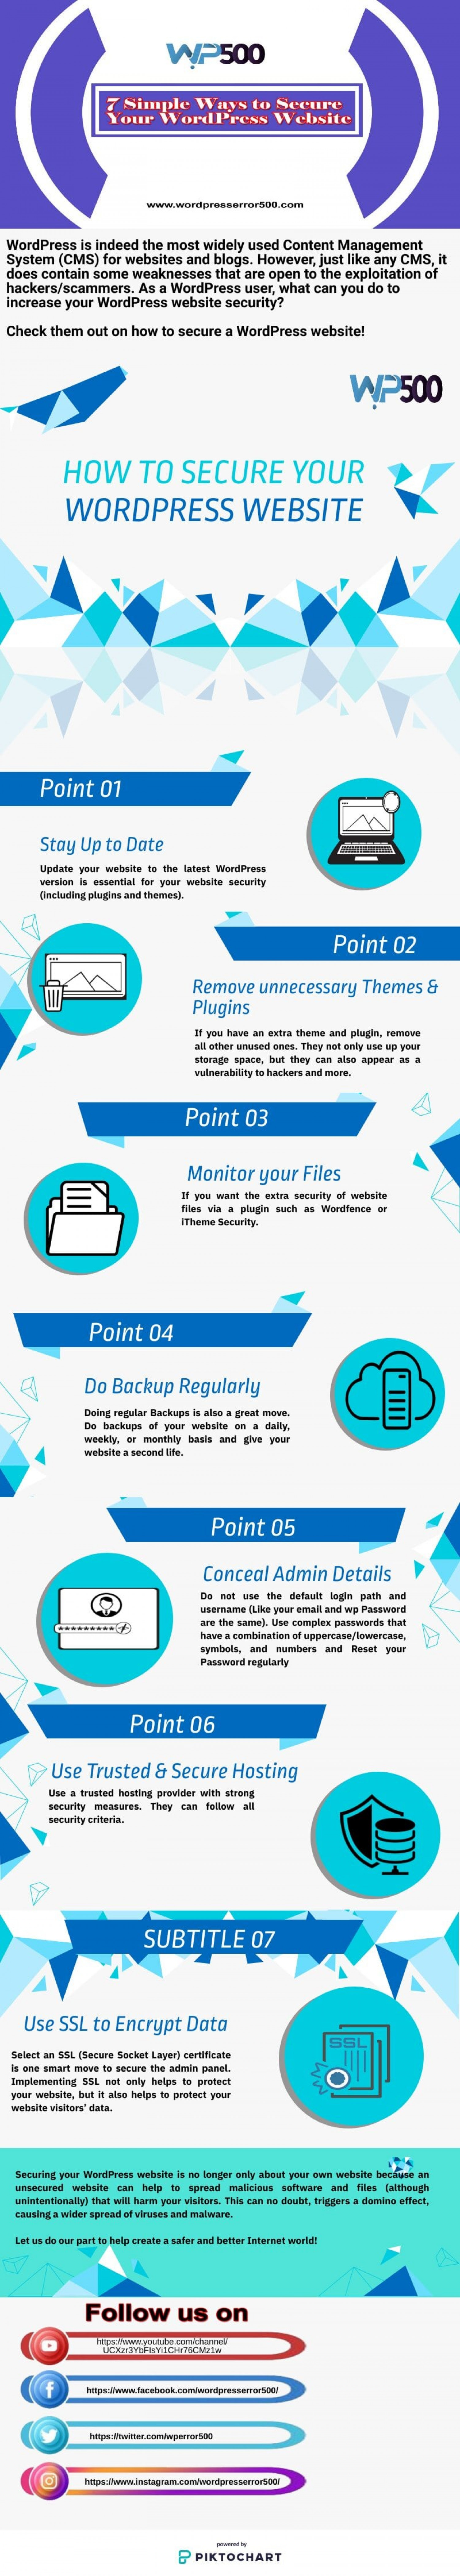 7 Simple Ways to Secure Your WordPress Website Infographic